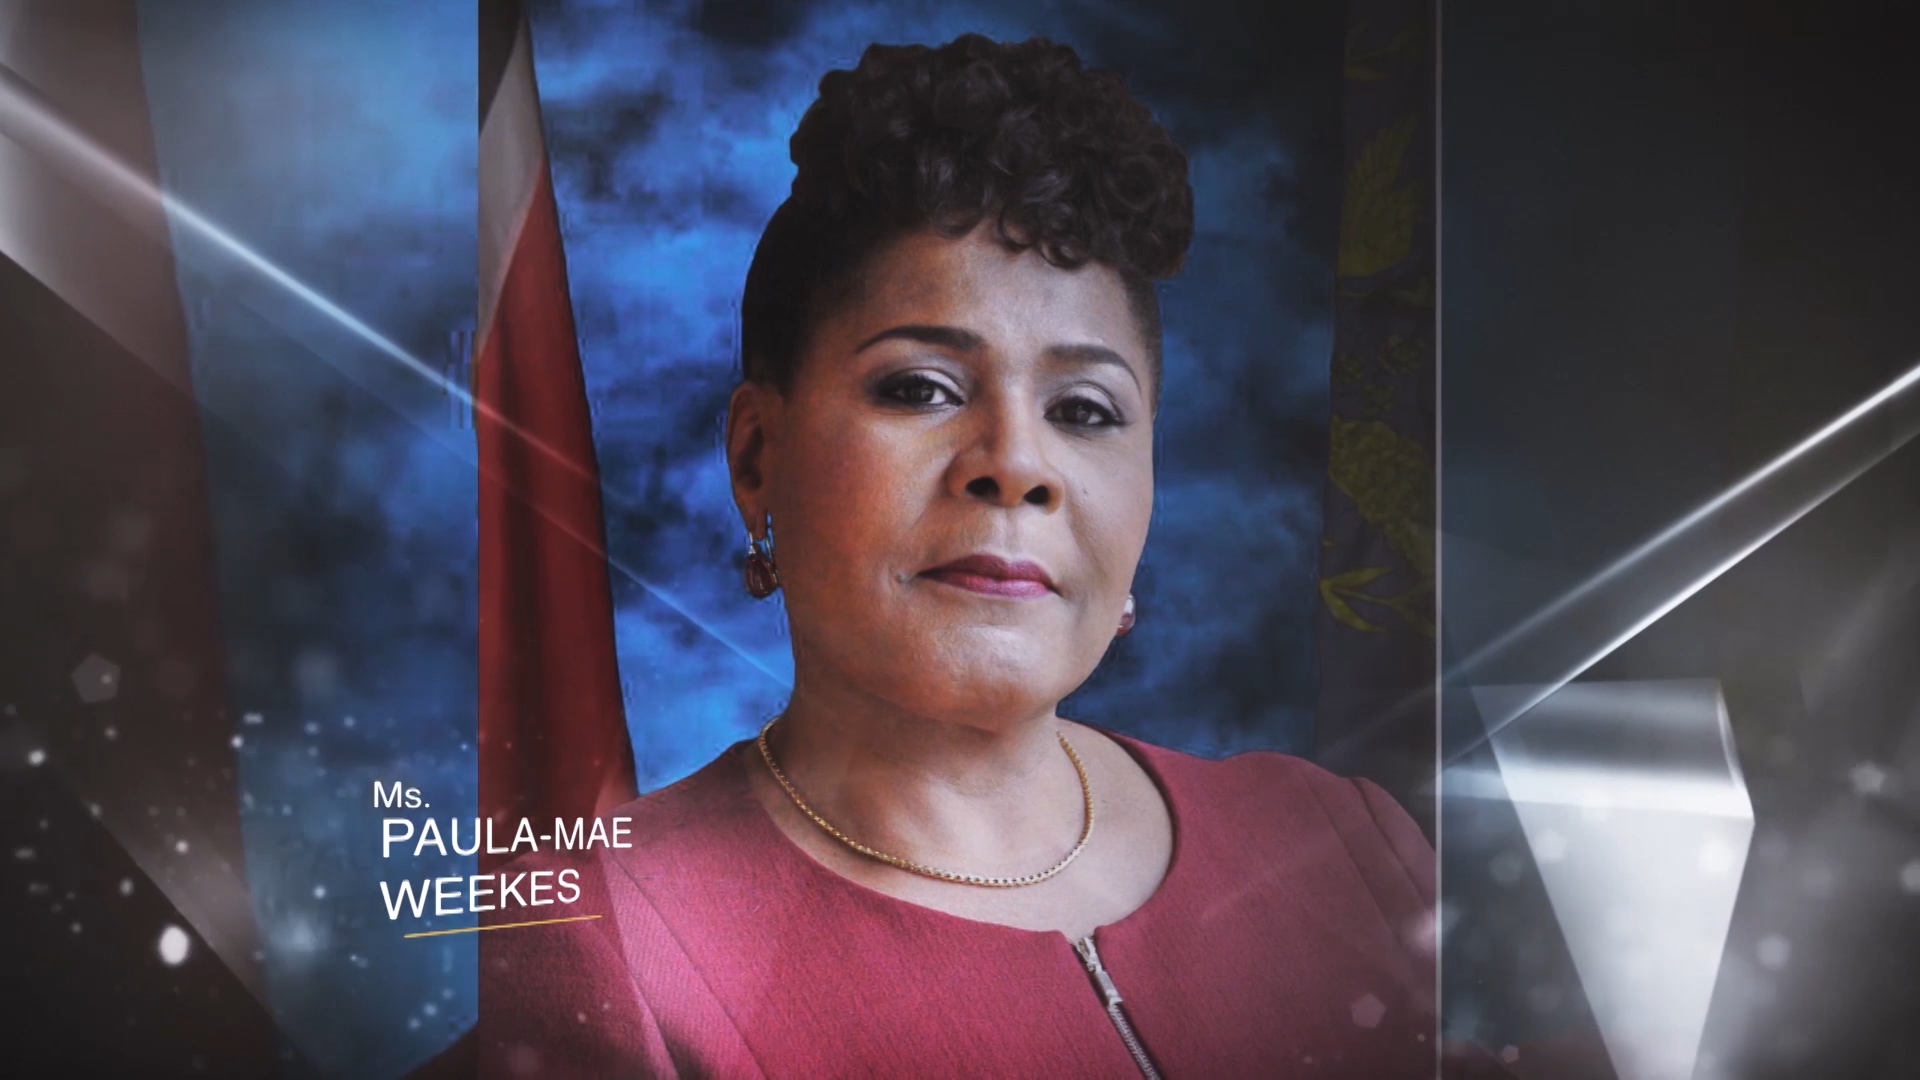 PRESIDENTS OF THE PAST – Ms. Puala-Mae Weekes